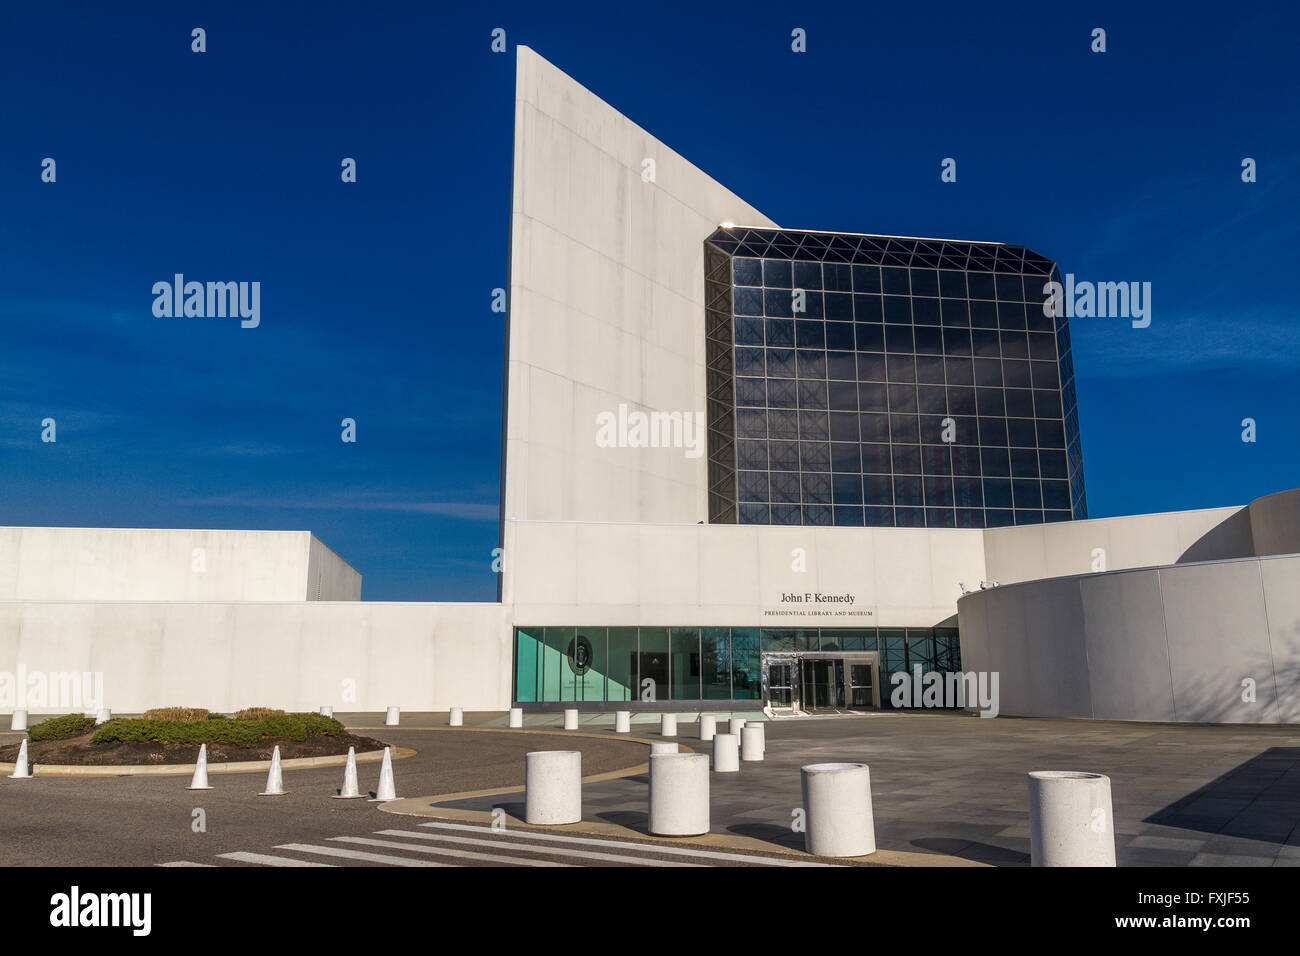 The Abstract angles and curves and large glass atrium of The John F. Kennedy Presidential Library and Museum, Boston - Stock Image